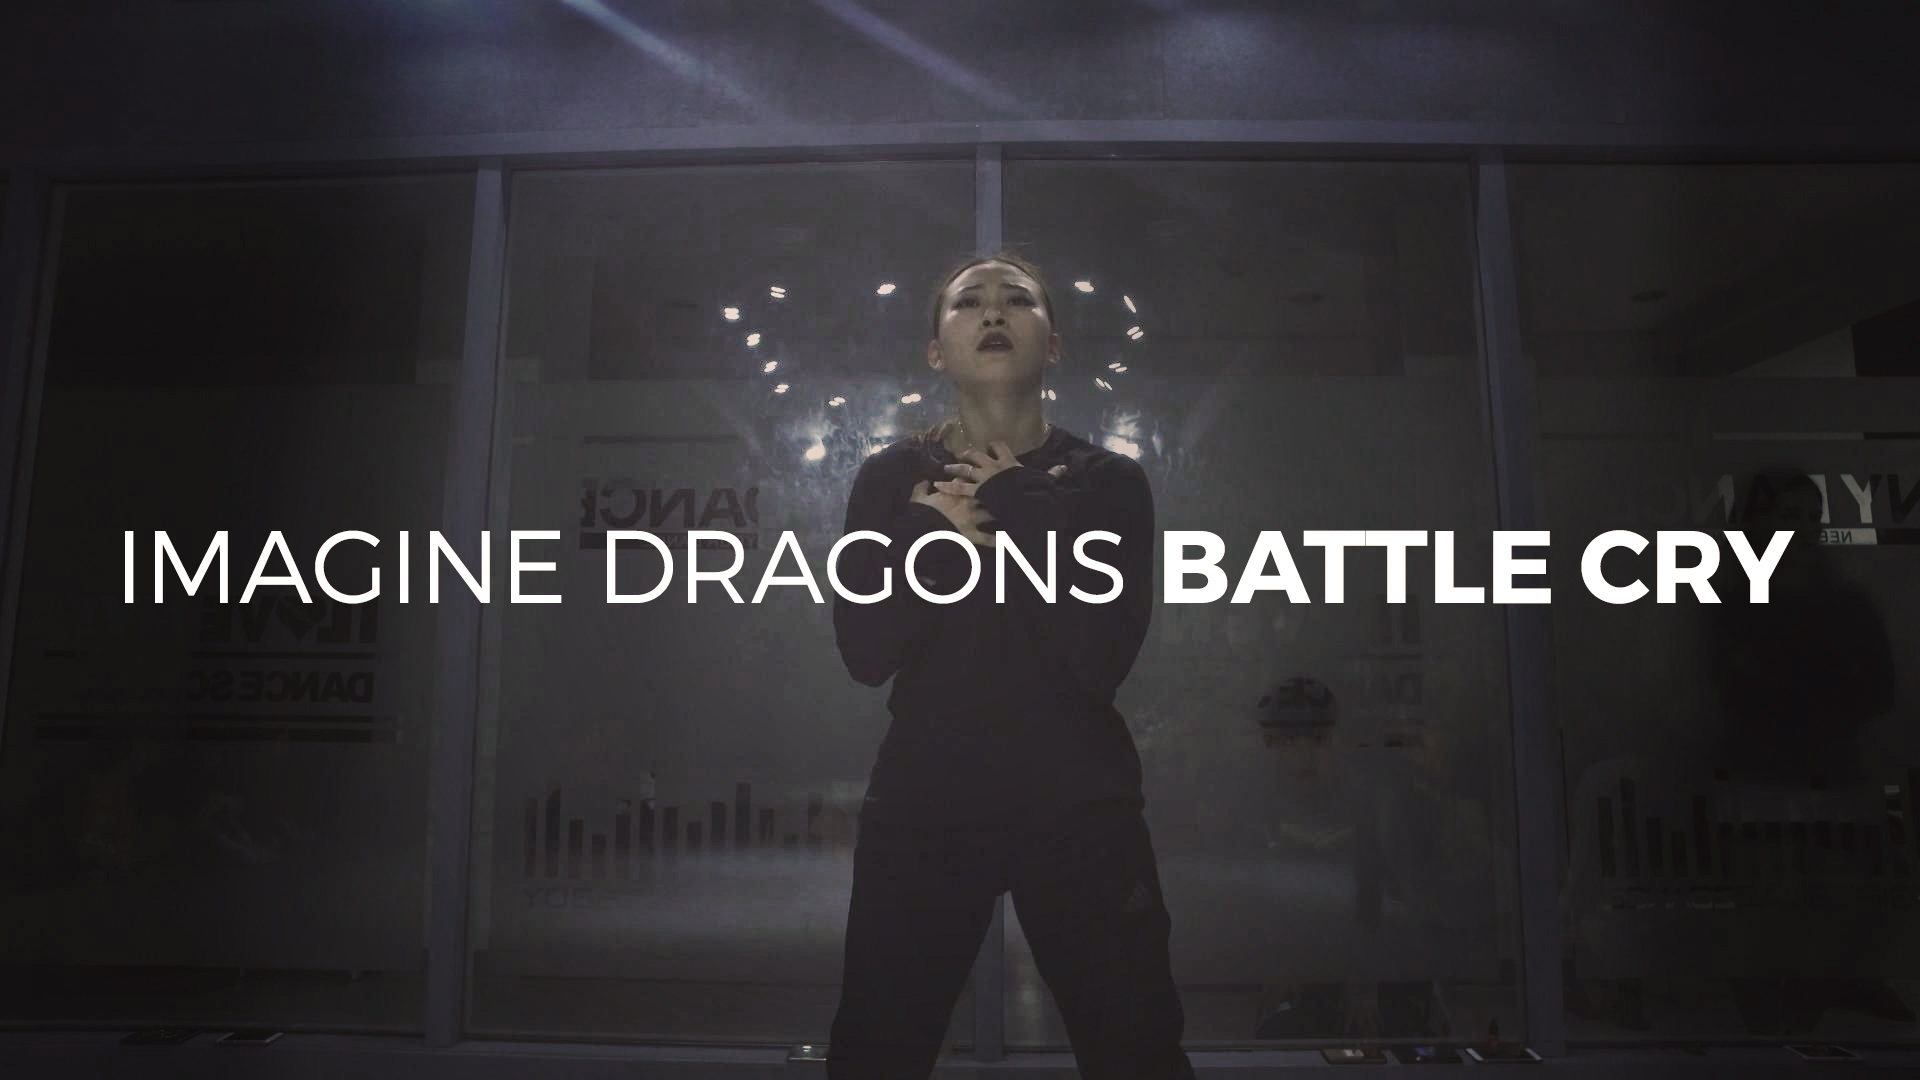 Battle cry – Imagine Dragons (choreography_J-fire)